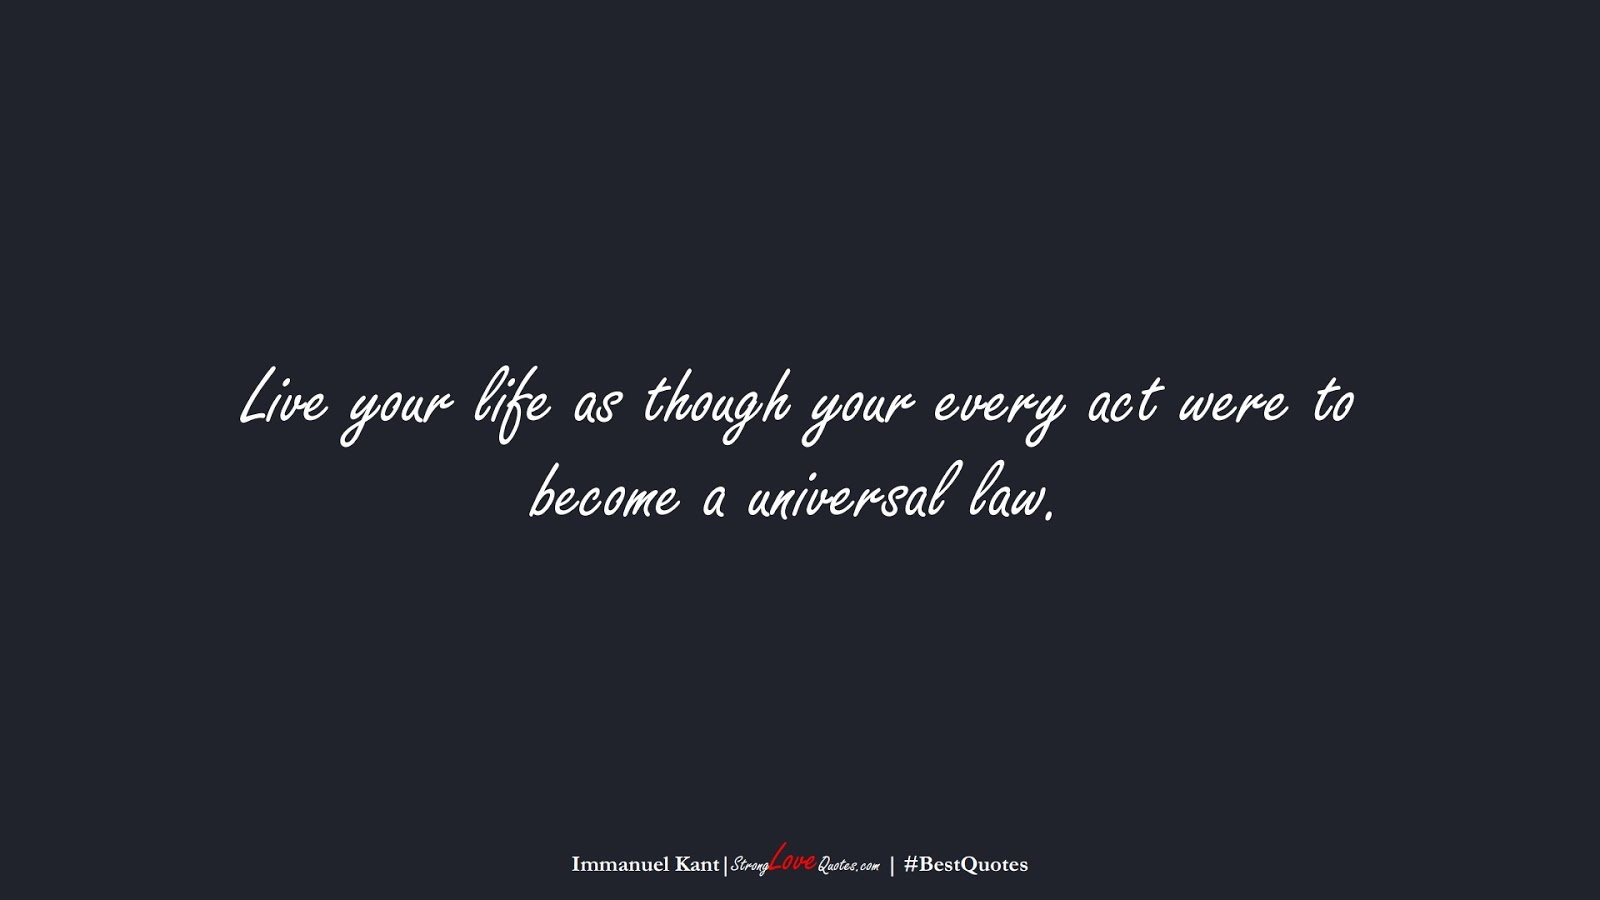 Live your life as though your every act were to become a universal law. (Immanuel Kant);  #BestQuotes